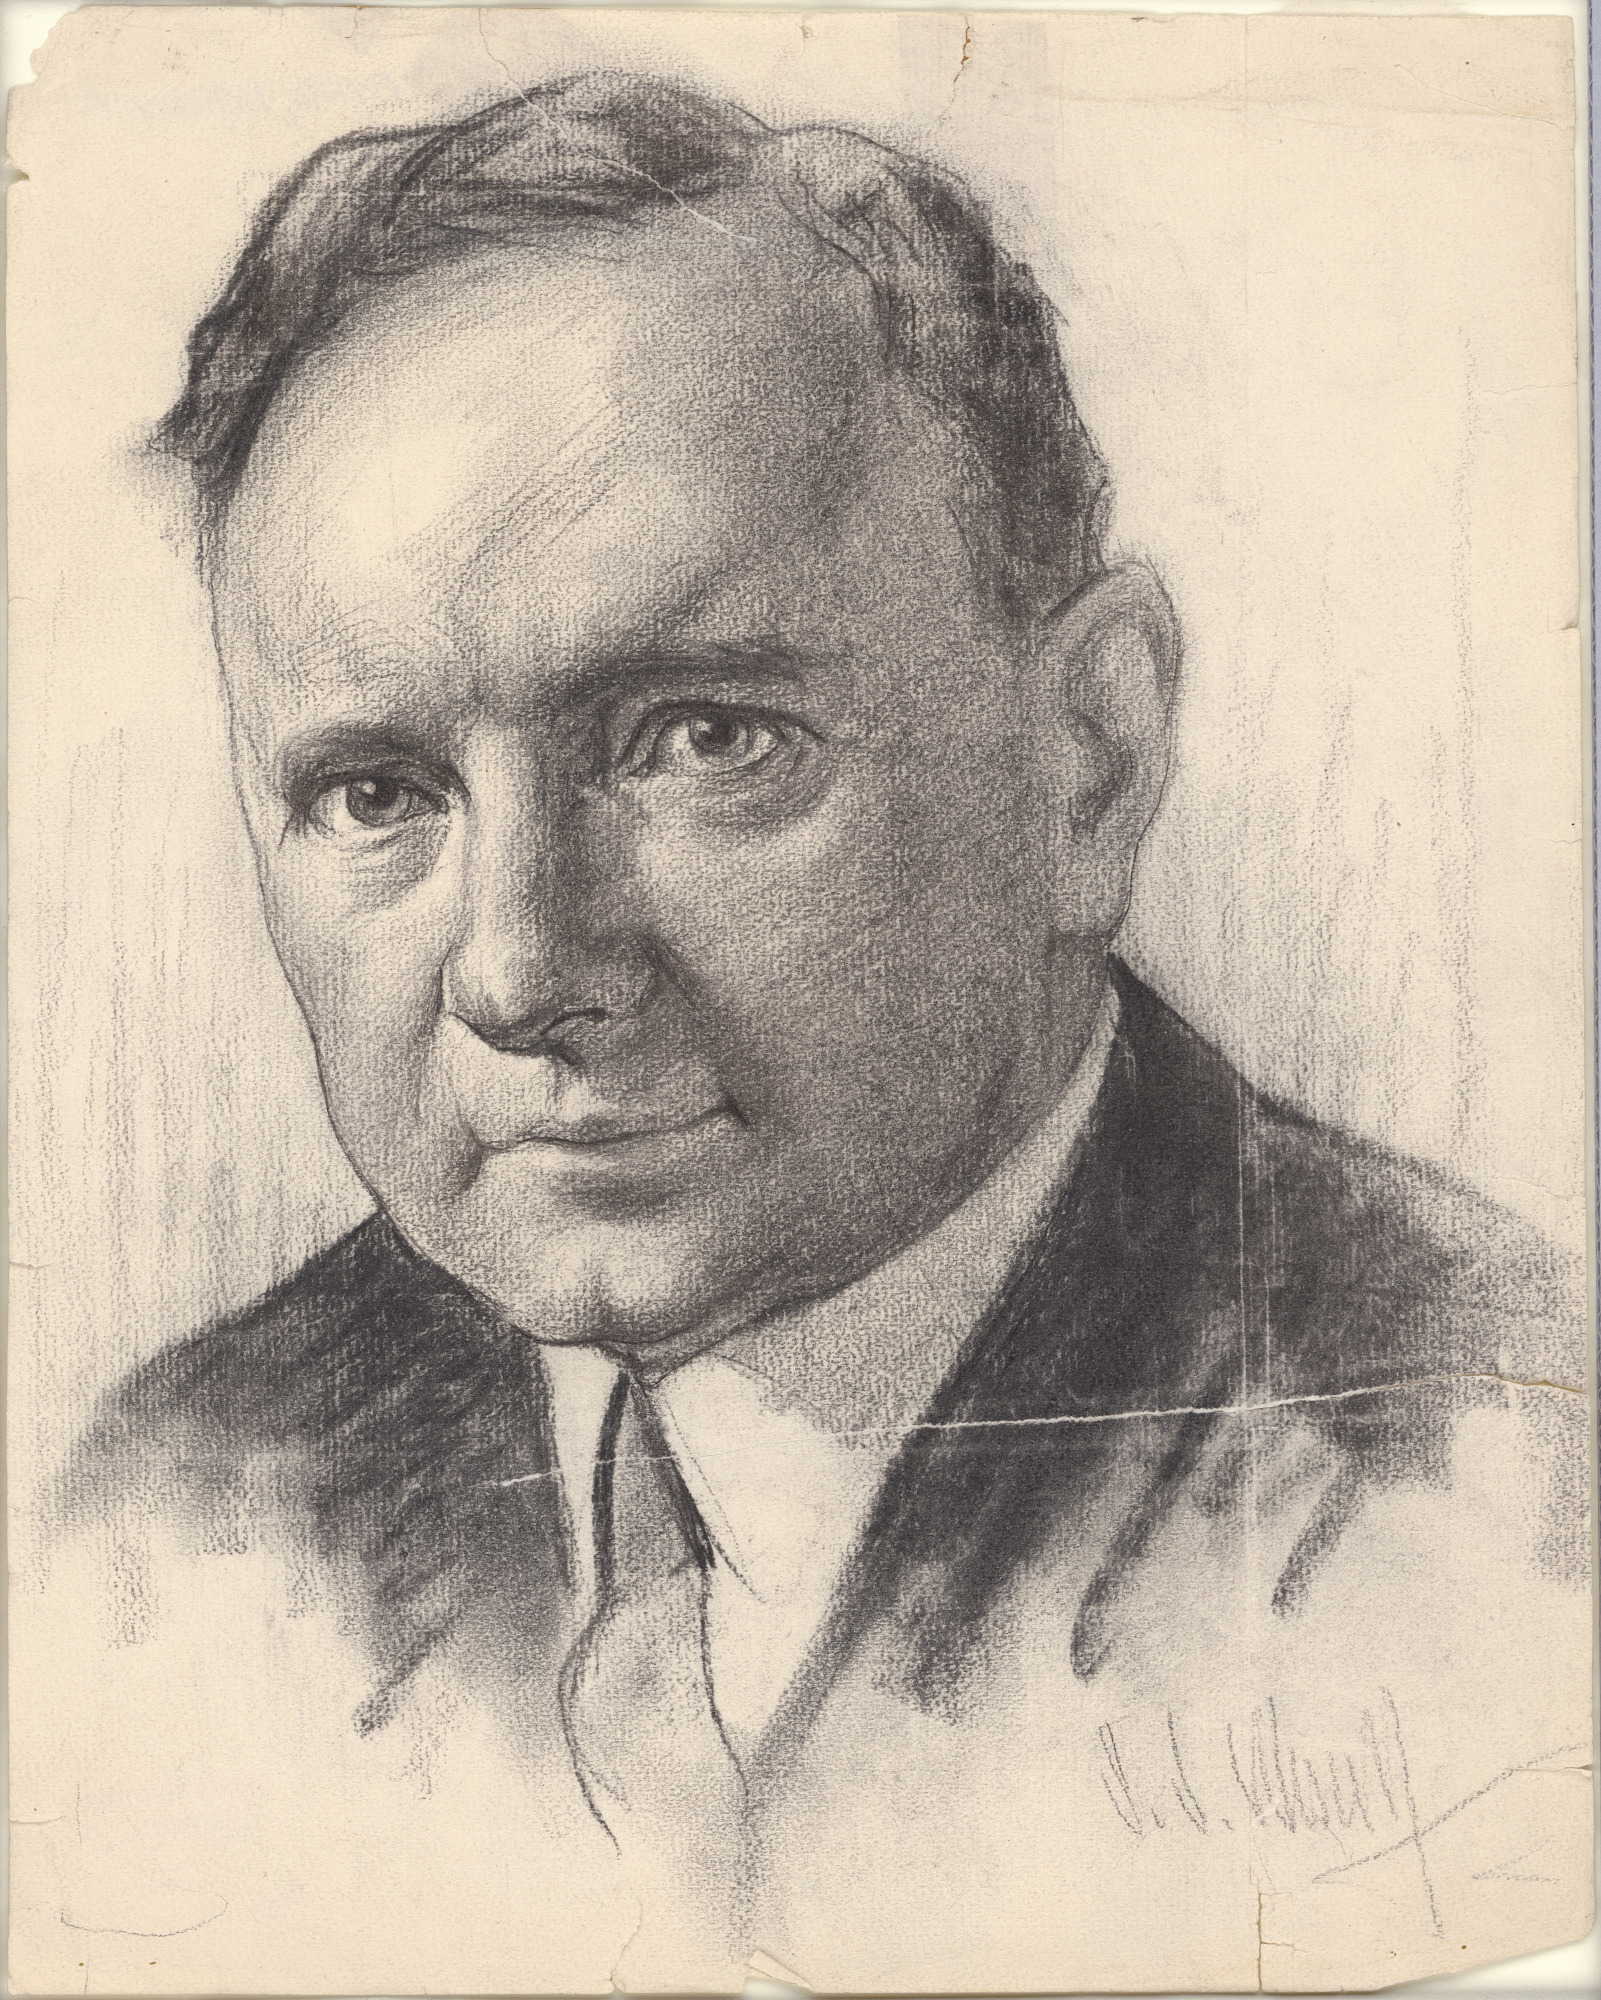 Harry F. Byrd